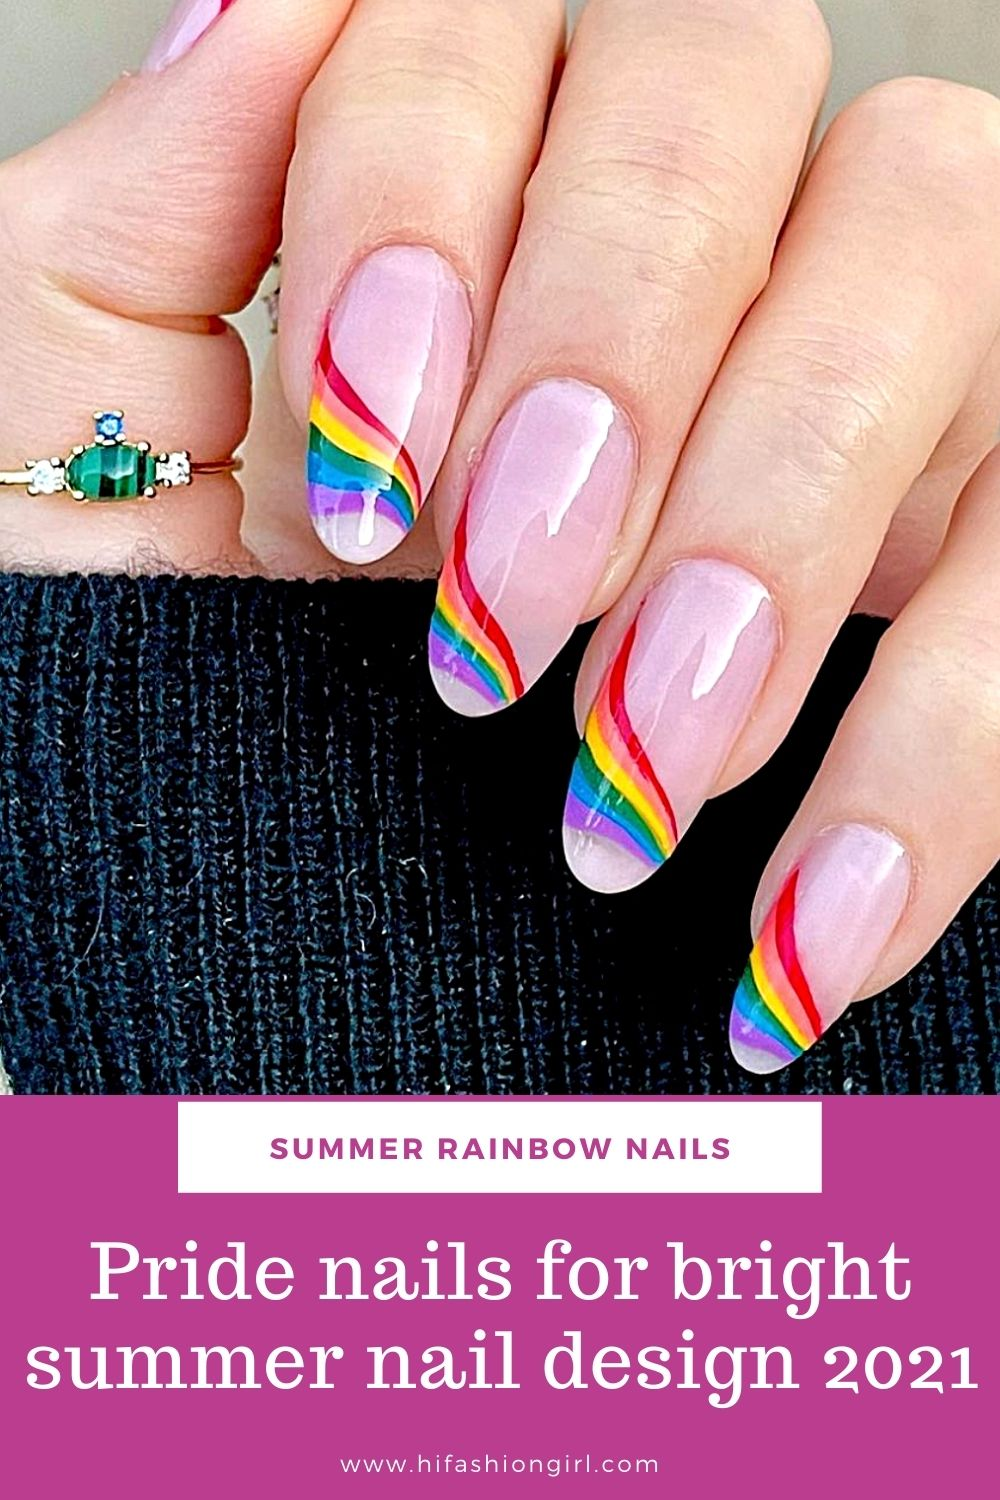 Pride nails design art for your Summer rainbow nail 2021 !